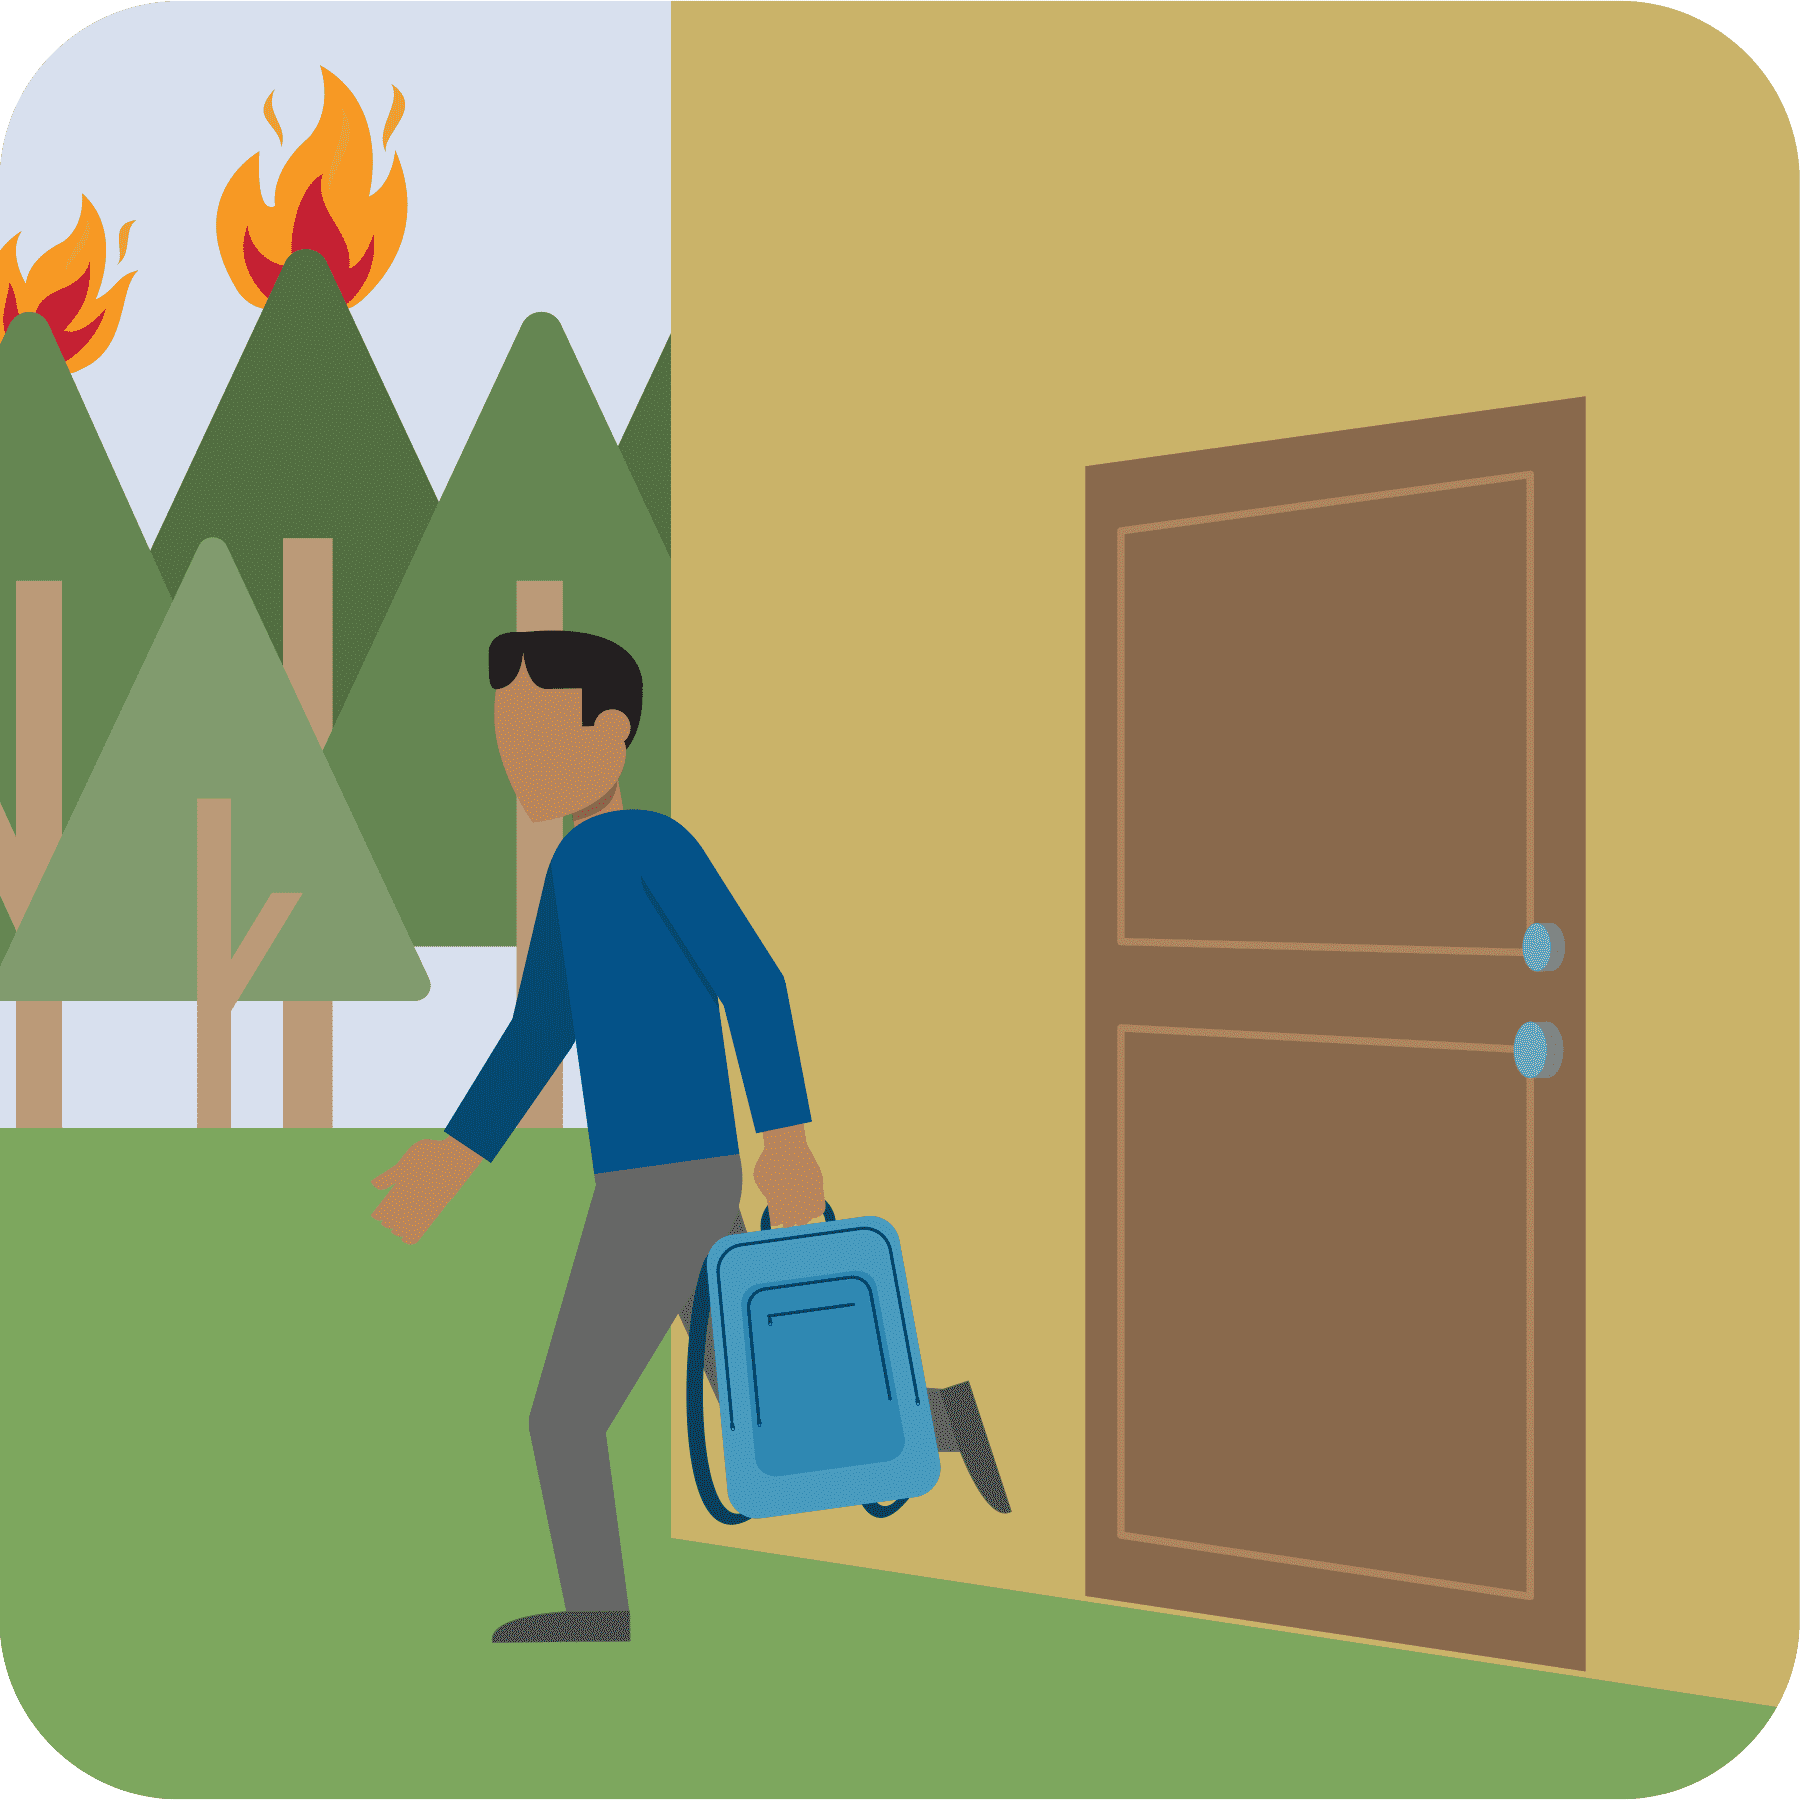 A man is shown leaving his house with a kit. A wildfire is shown in the background.